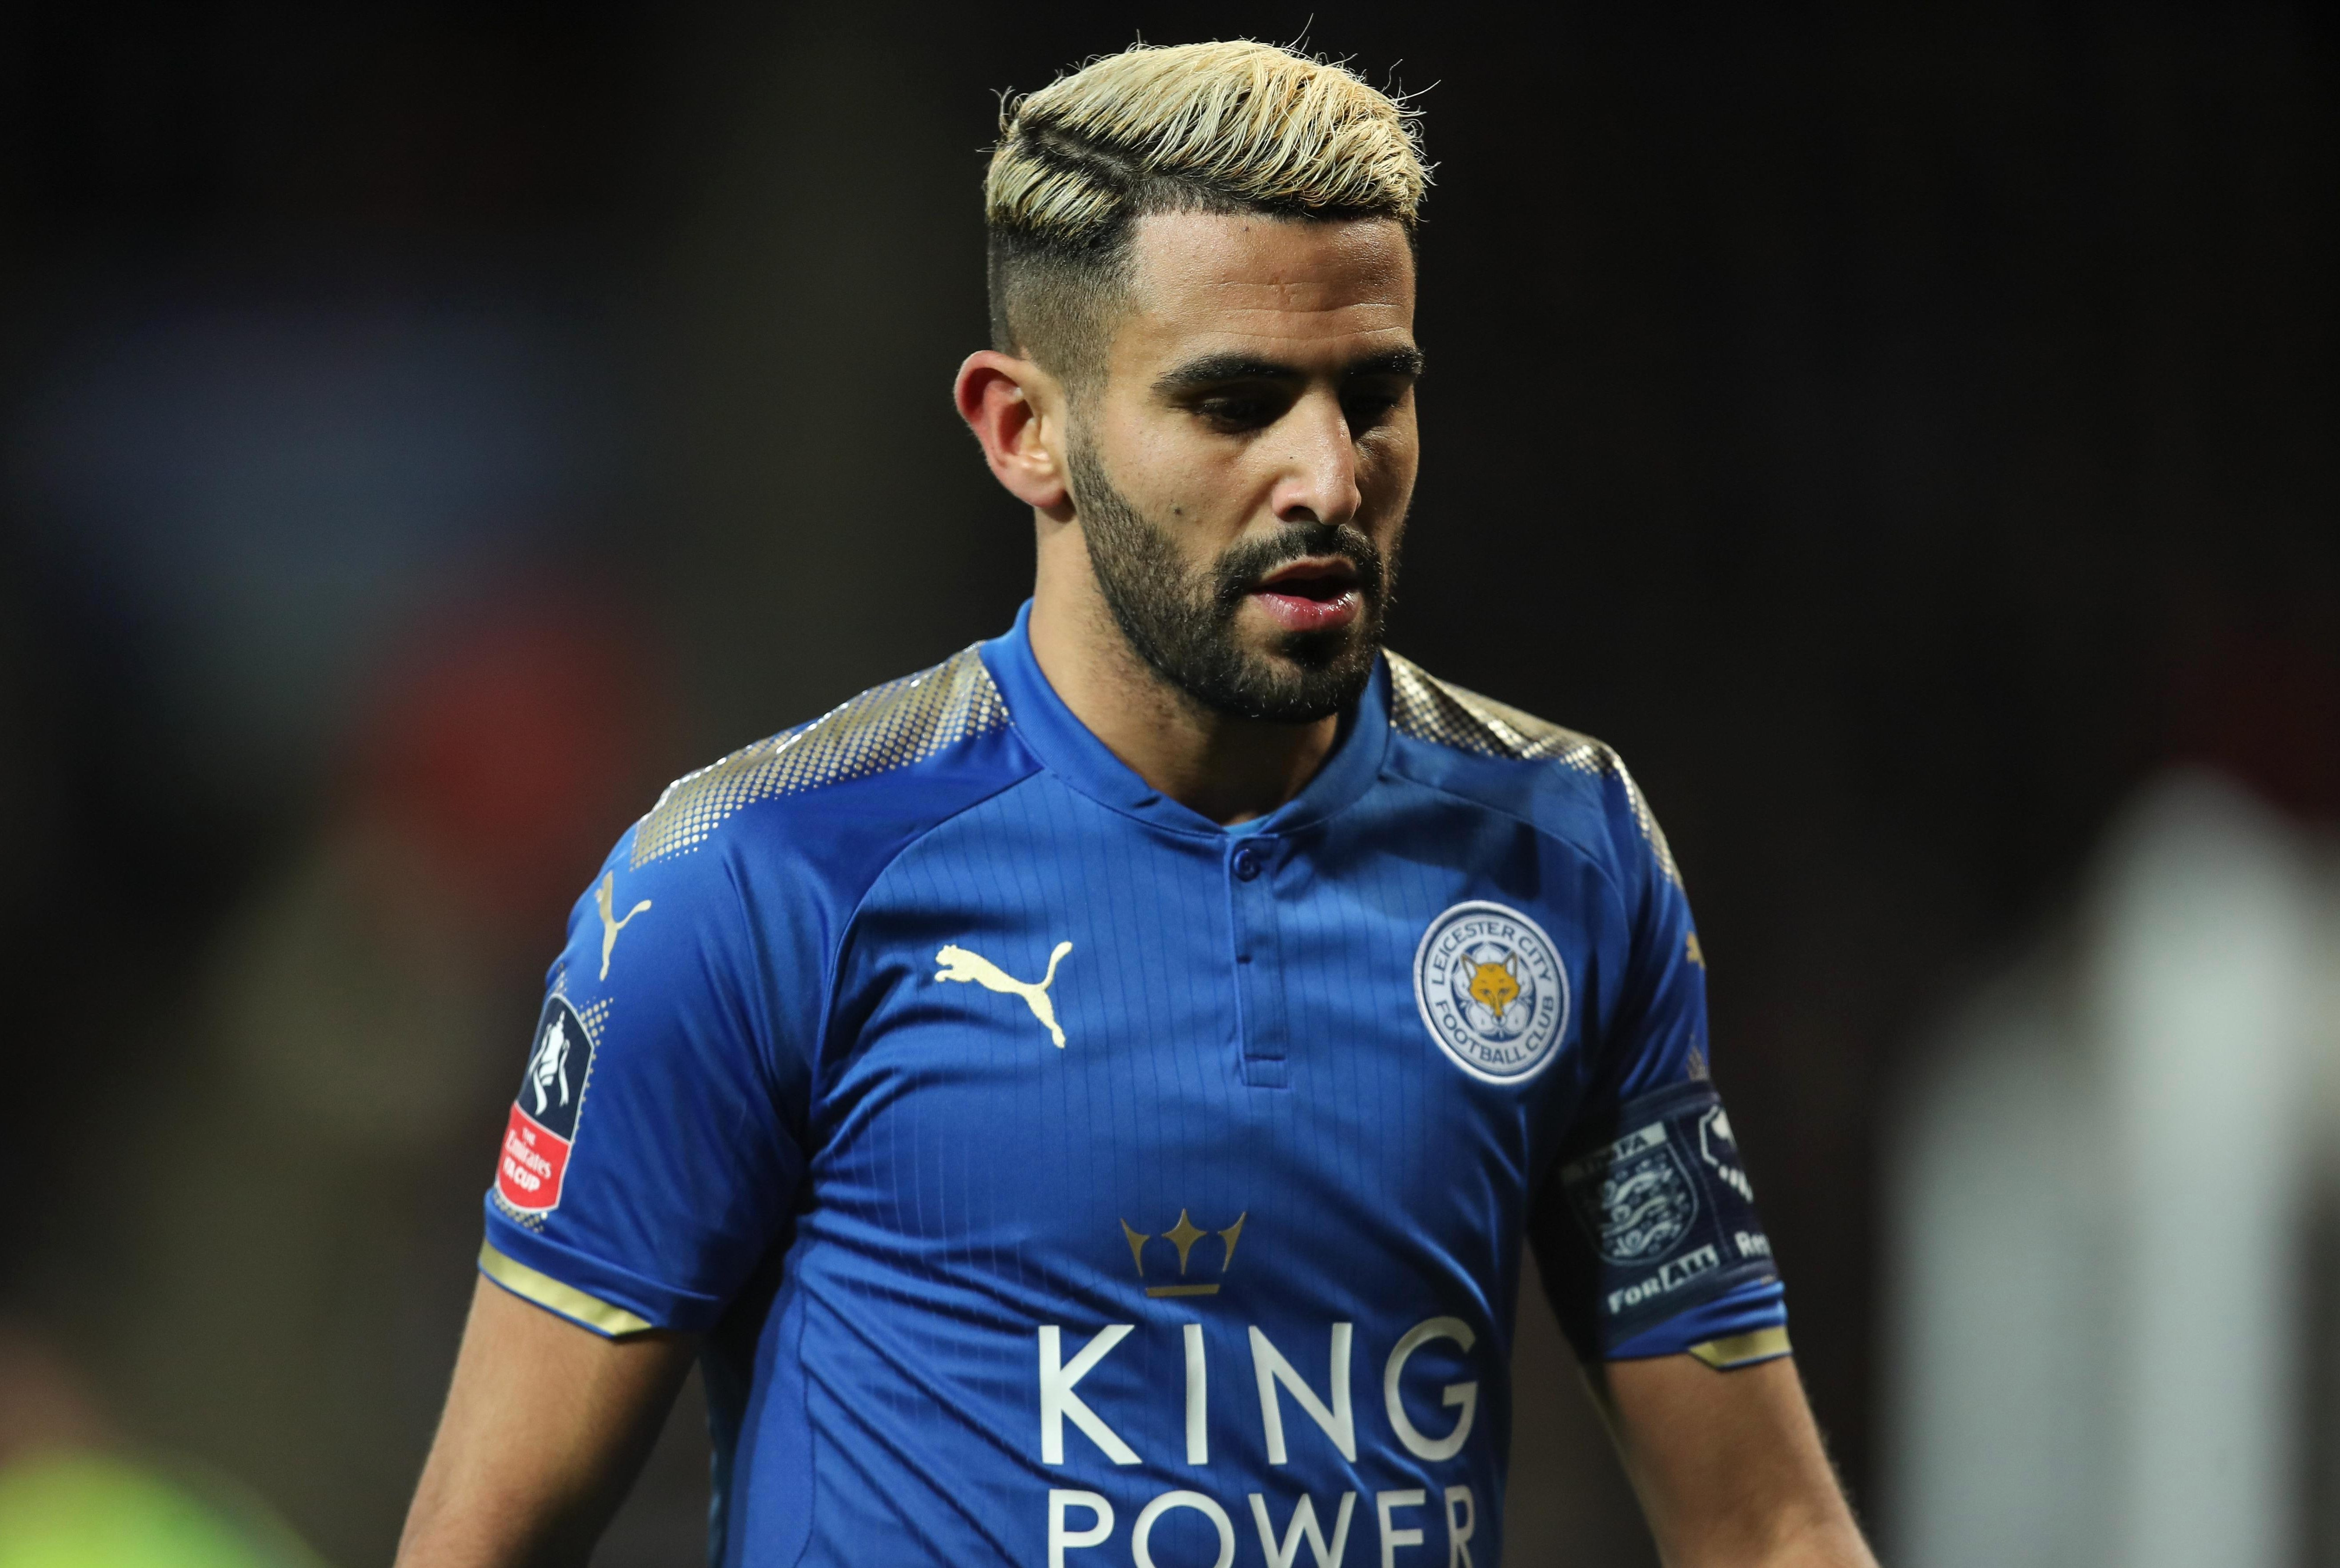 Leicester star Riyad Mahrez to miss Manchester City clash this weekend as strike continues